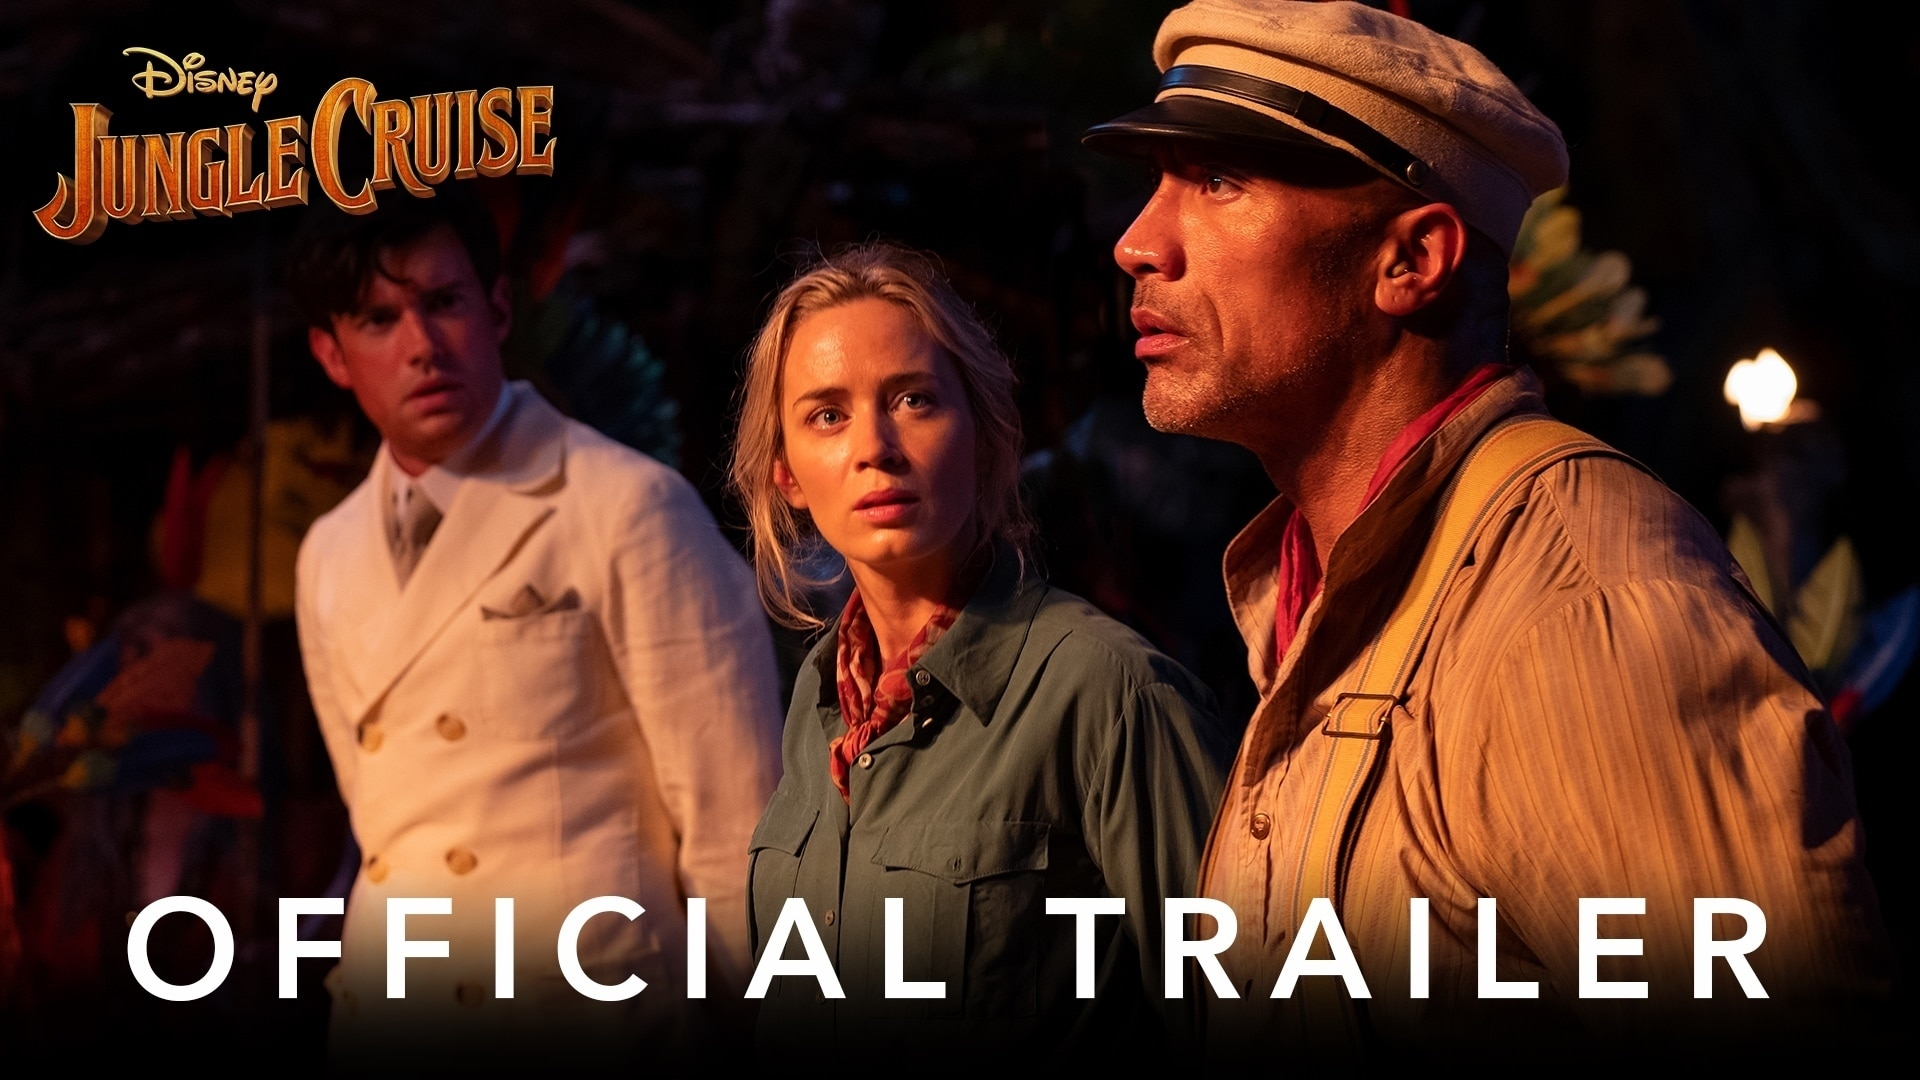 Jungle Cruise Trailer | In Theaters and on Disney+ with Premier Access July 30